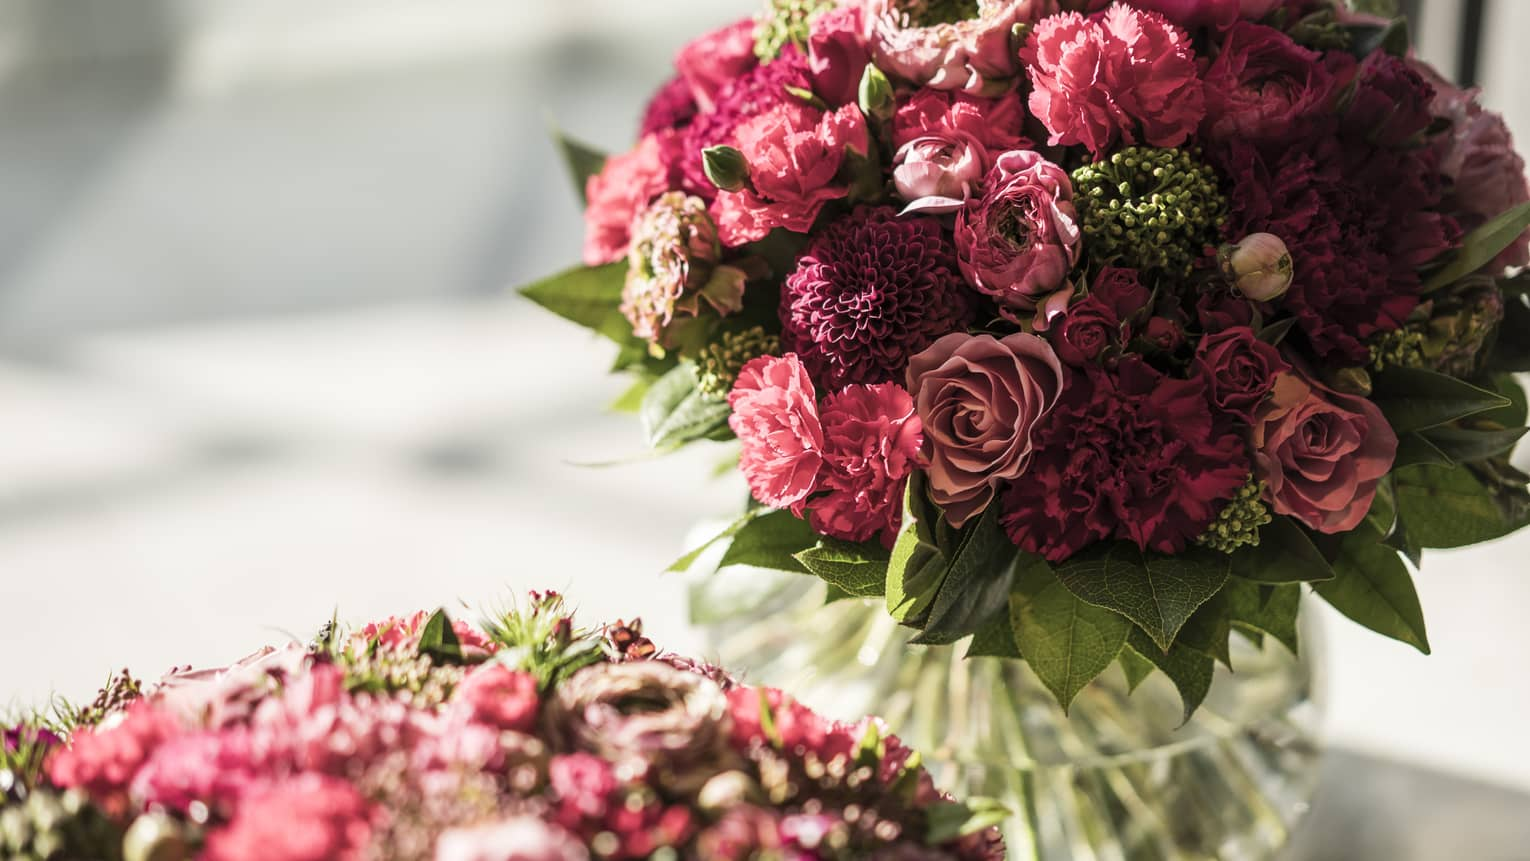 Closeup of two mauve and red floral bouquets in vases